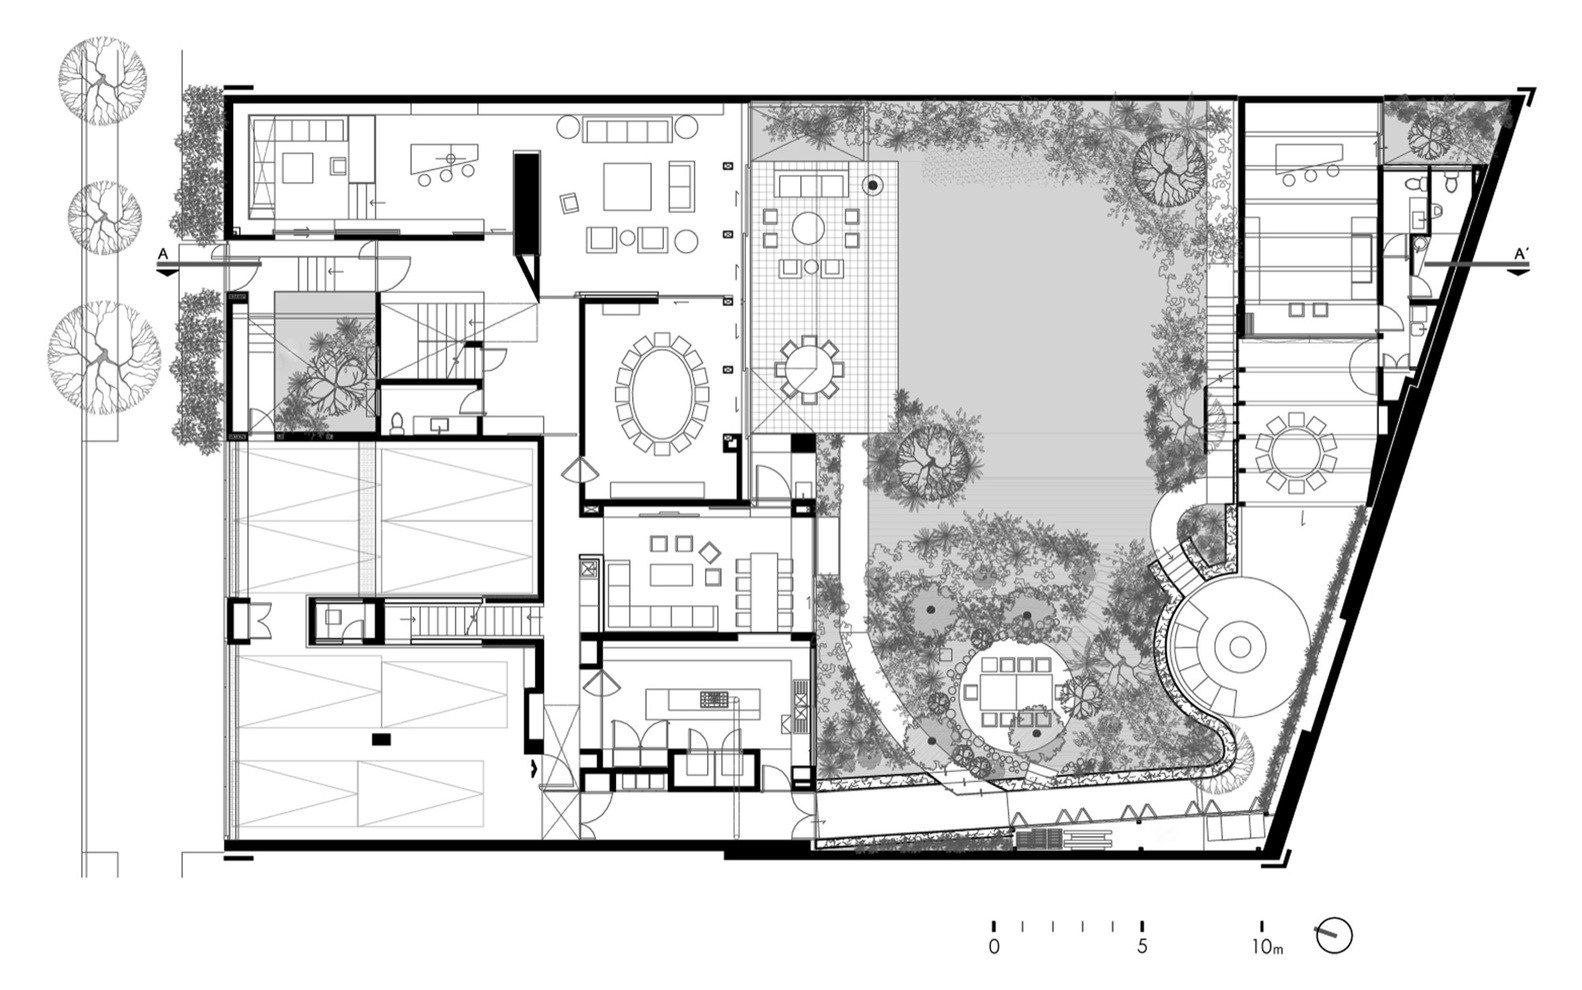 Garden View Design - This gorgeous home is a nature loving bookworm s paradise